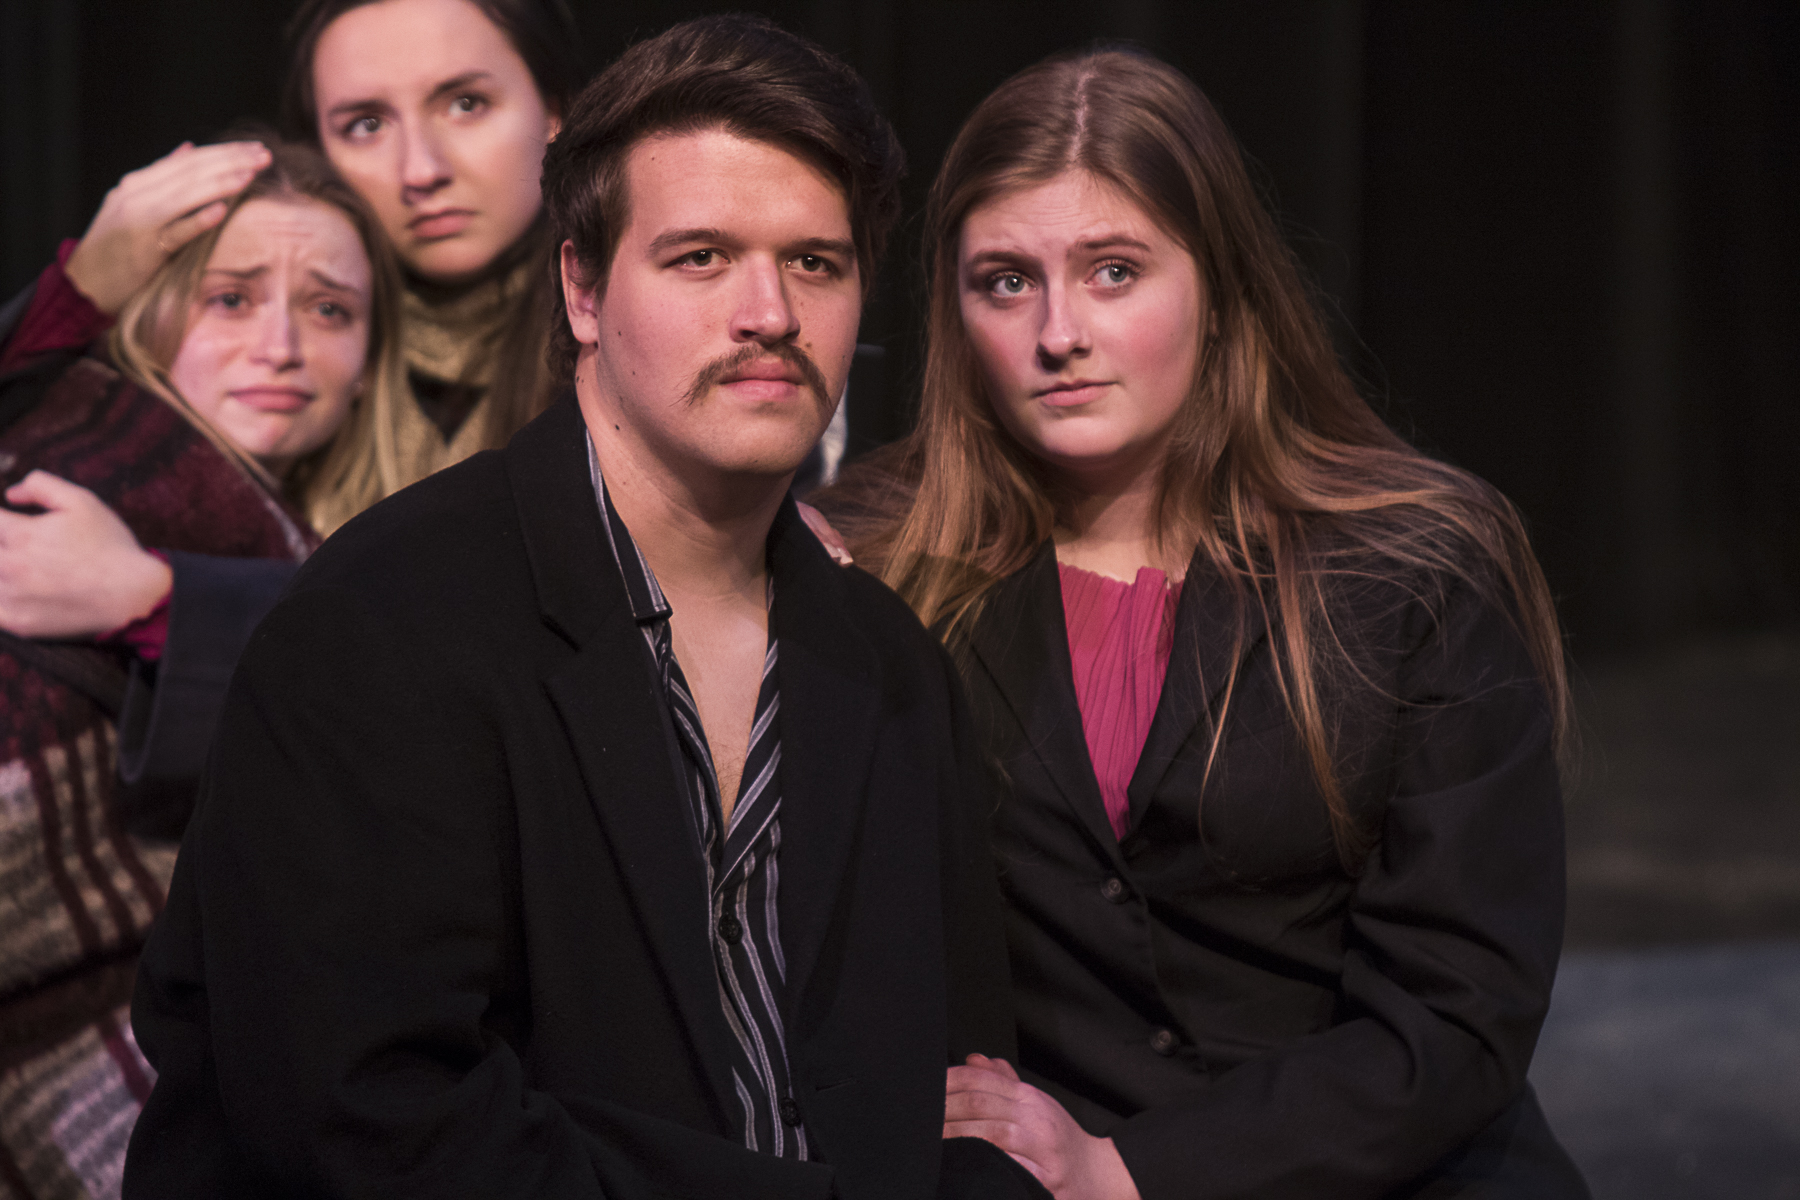 THE LAST LIFEBOAT - WCJC Drama Department presents play based on Titanic tragedy